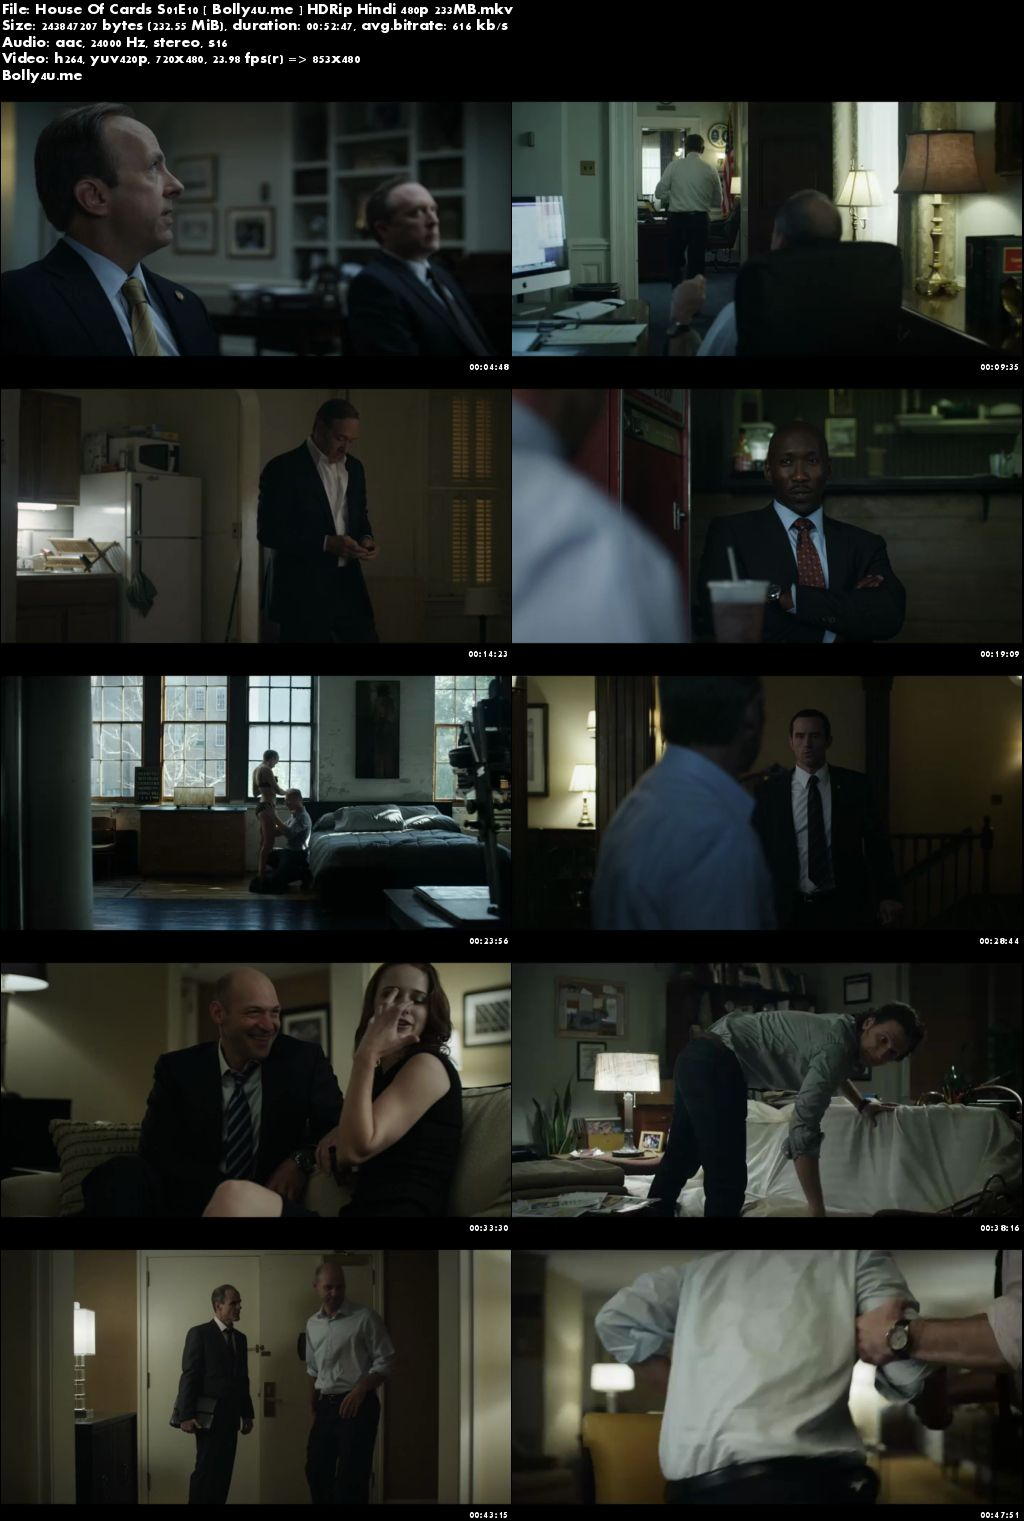 House Of Cards S01E10 HDRip 200MB Hindi Dubbed 480p Download